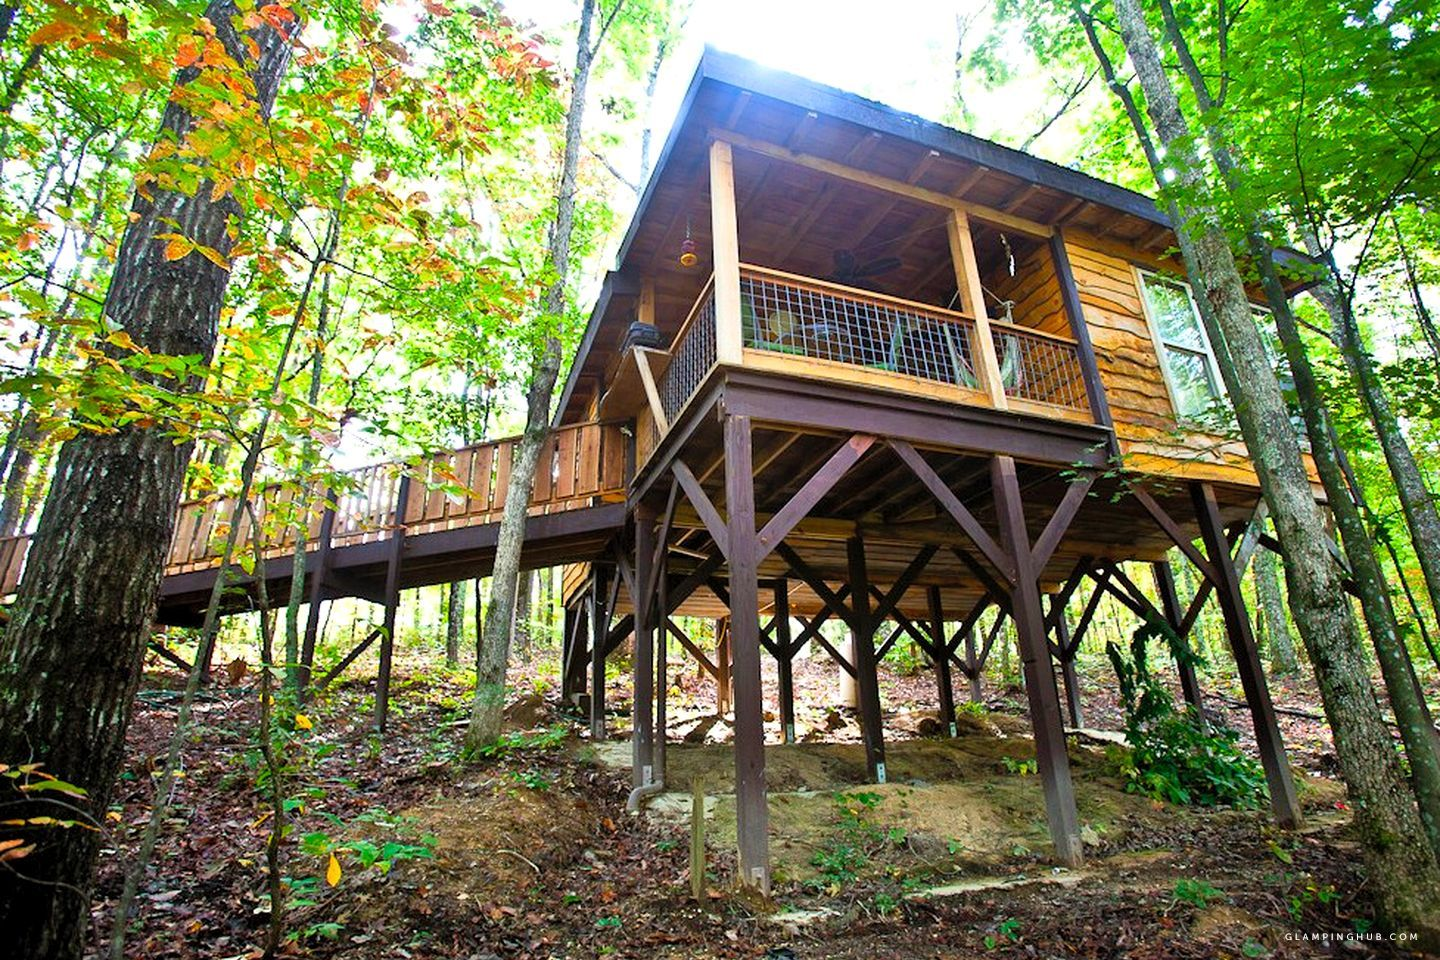 Cozy little tree house tucked away in the woods near